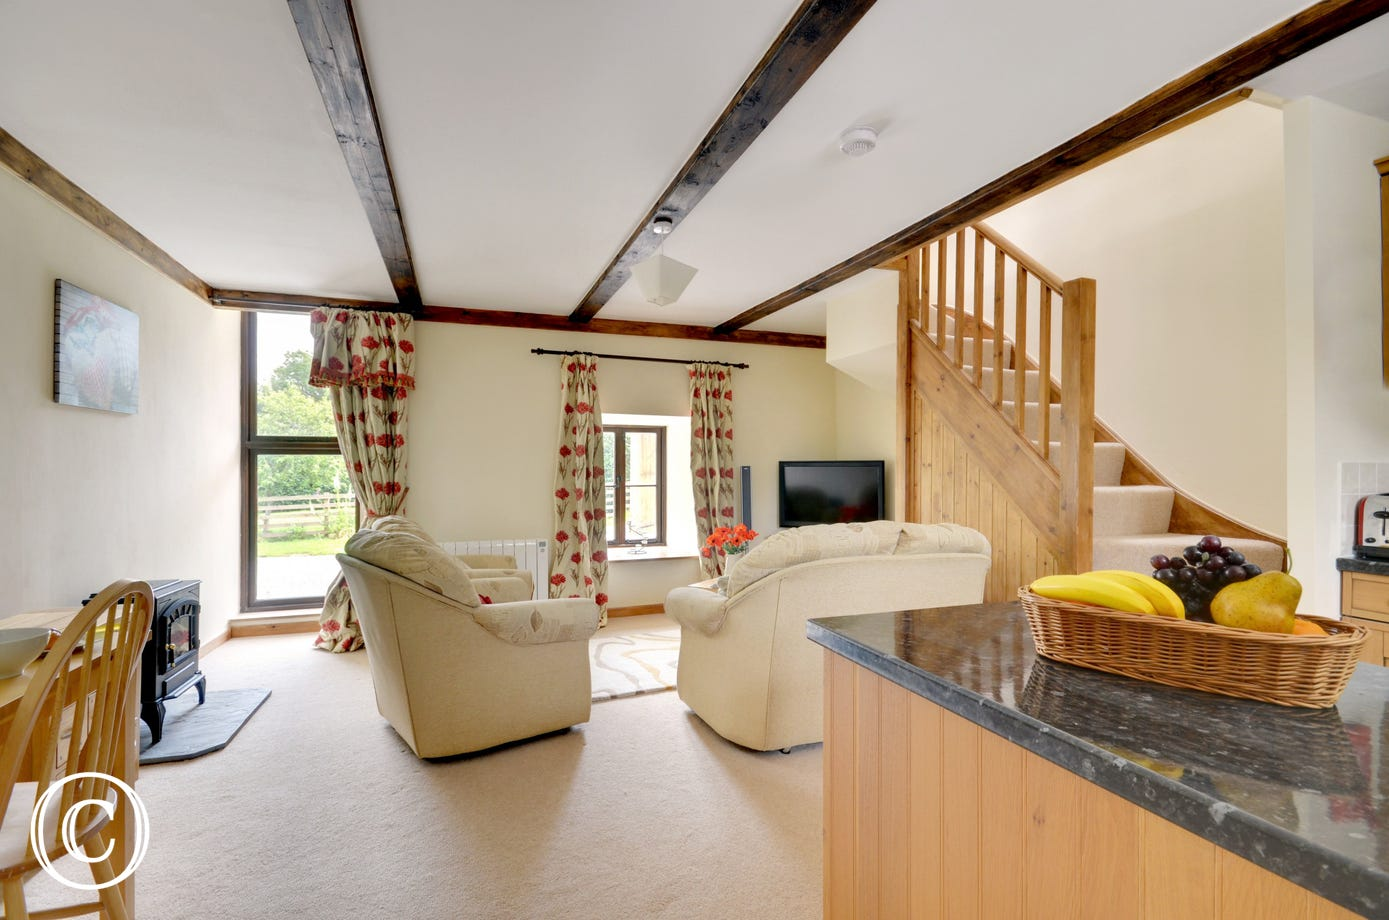 On the ground floor a cosy open plan living and dining room has ample space for relaxation or leisurely meals